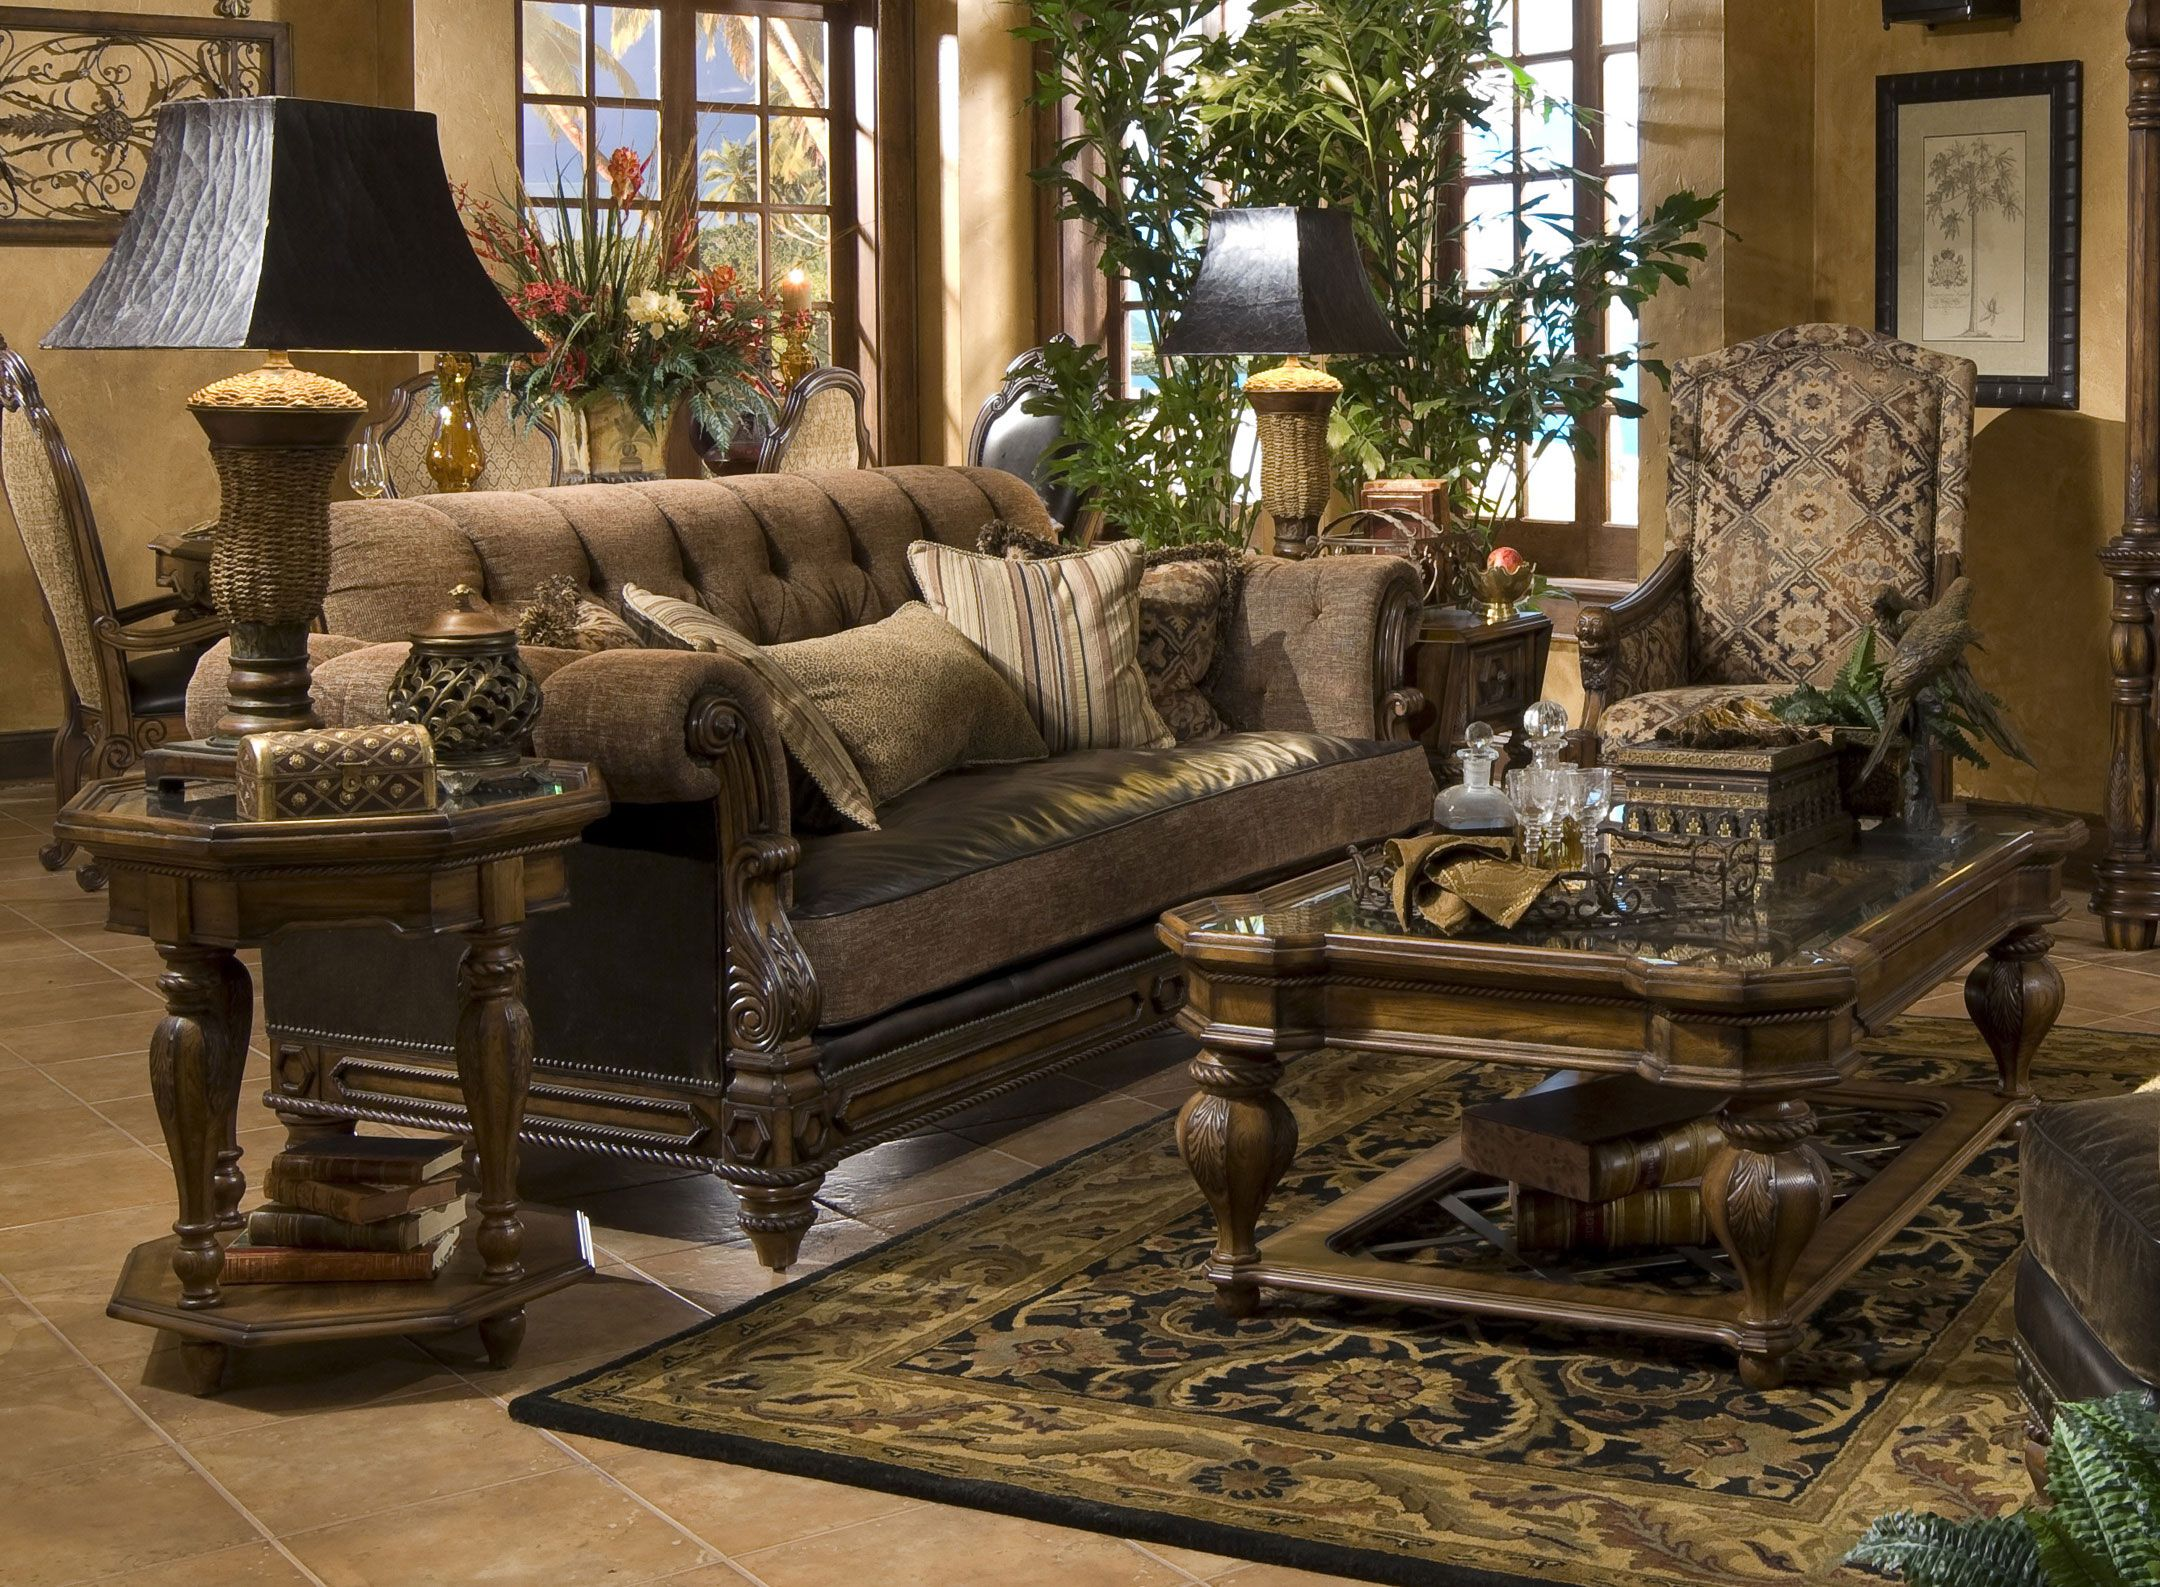 Image Detail For The Aico Michael Amini Signature Series Furniture Collections Vipfurniture Eu Tuscan Living Rooms Tuscany Decor Mediterranean Home Decor